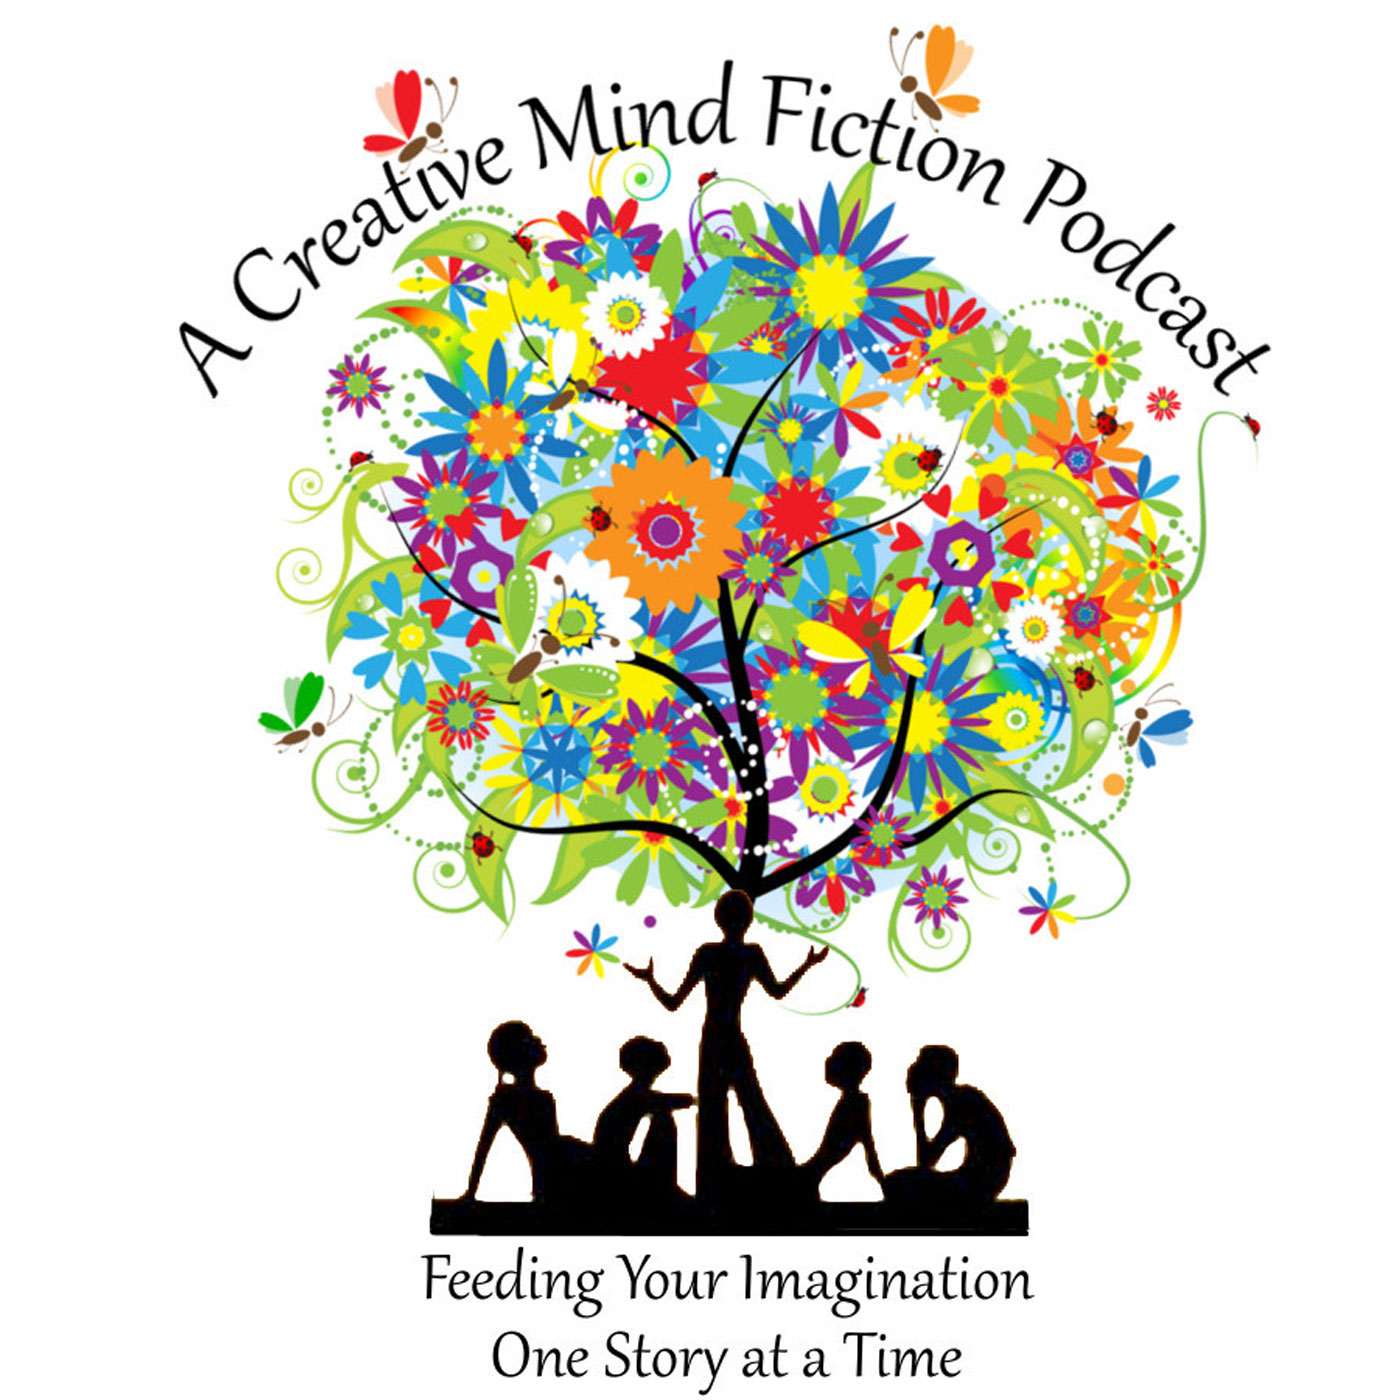 """A Creative Mind Fiction Podcast, Short Stories & Flash Fiction Audio Books by Alice Nelson and Carrie Zylka"" Podcast"